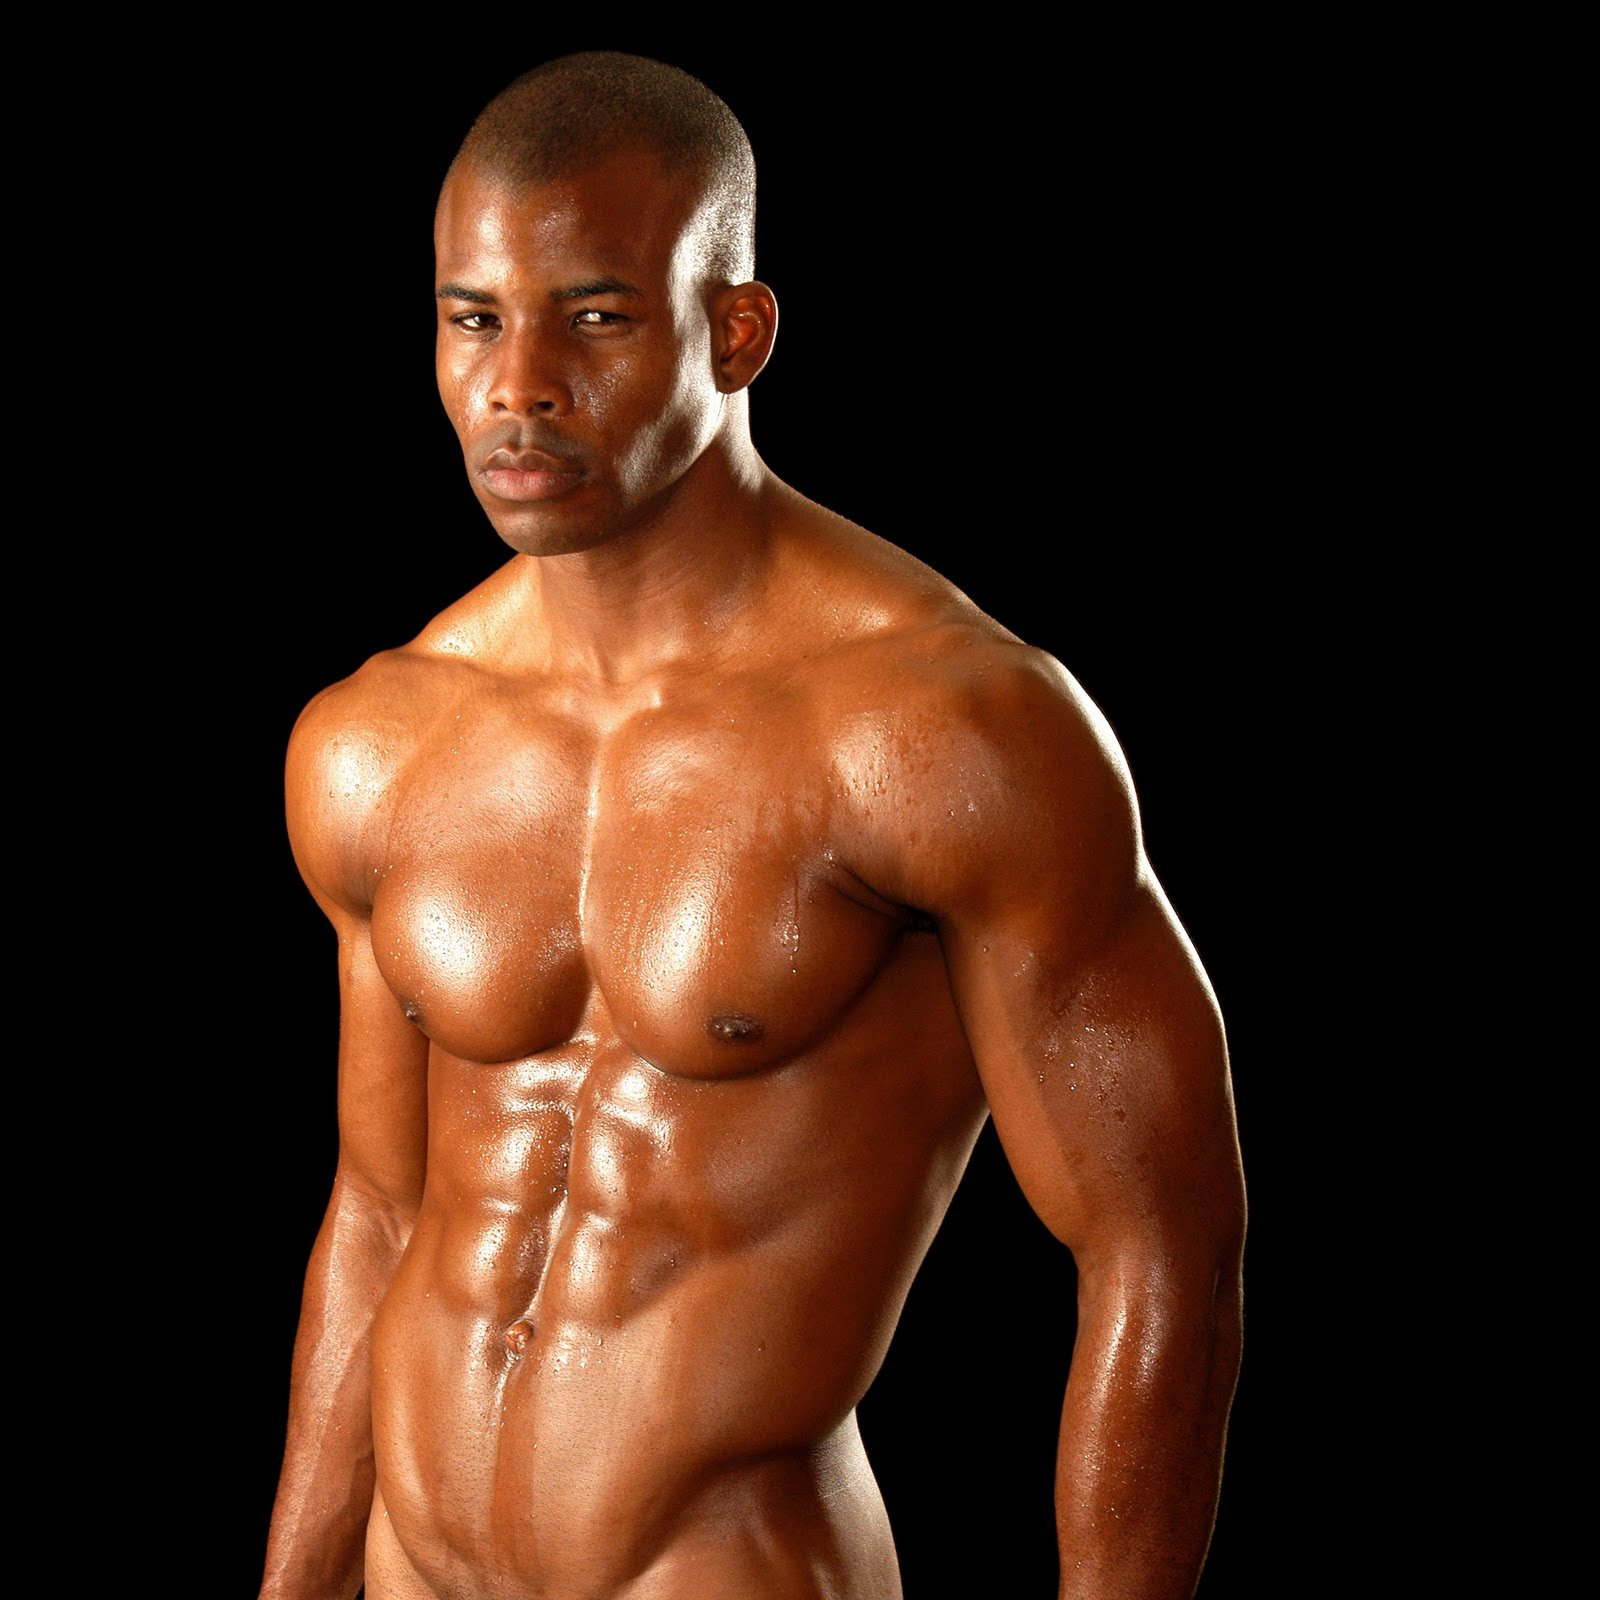 ... sexiest pictures of the most downloaded black male model, Ngo Okafor